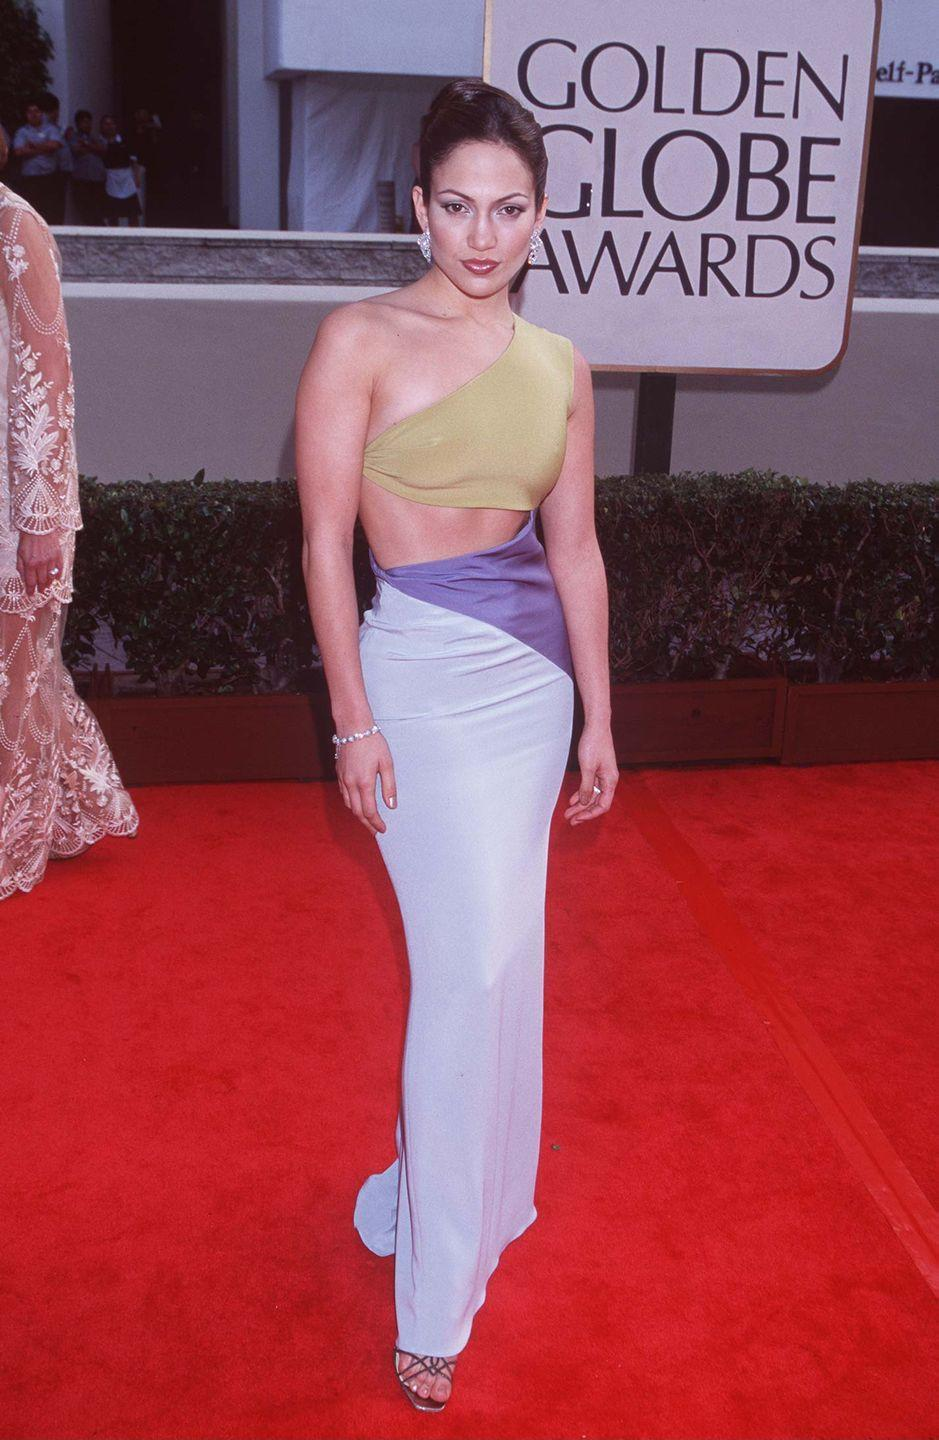 <p><strong>When: </strong>January 1998</p><p><strong>Where: </strong>The Golden Globes</p><p><strong>Wearing: </strong>An ab-baring colour-block gown</p>